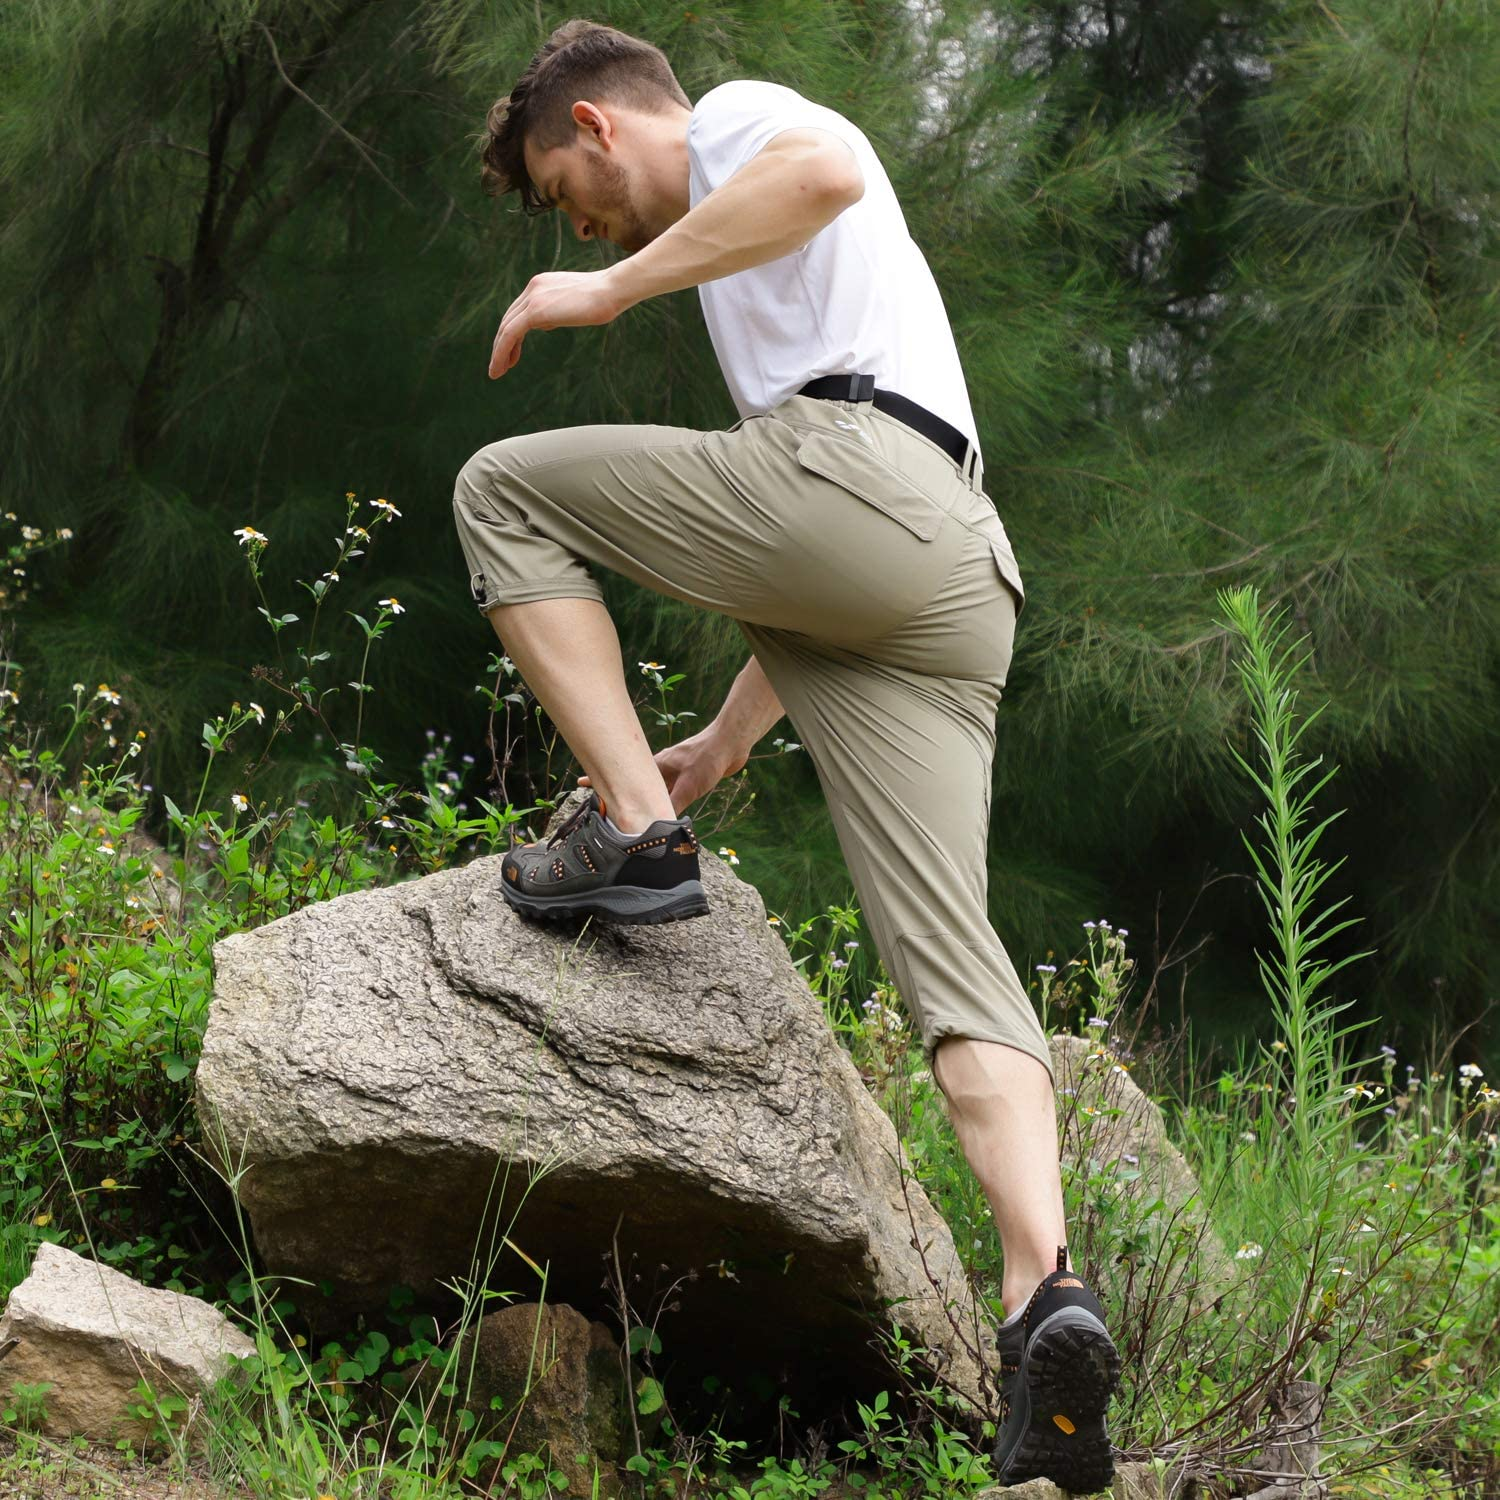 MIER Mens Quick Dry Hiking Capris Pants Lightweight Stretchy Cargo Shorts Below Knee with 5 Pockets Water Resistant